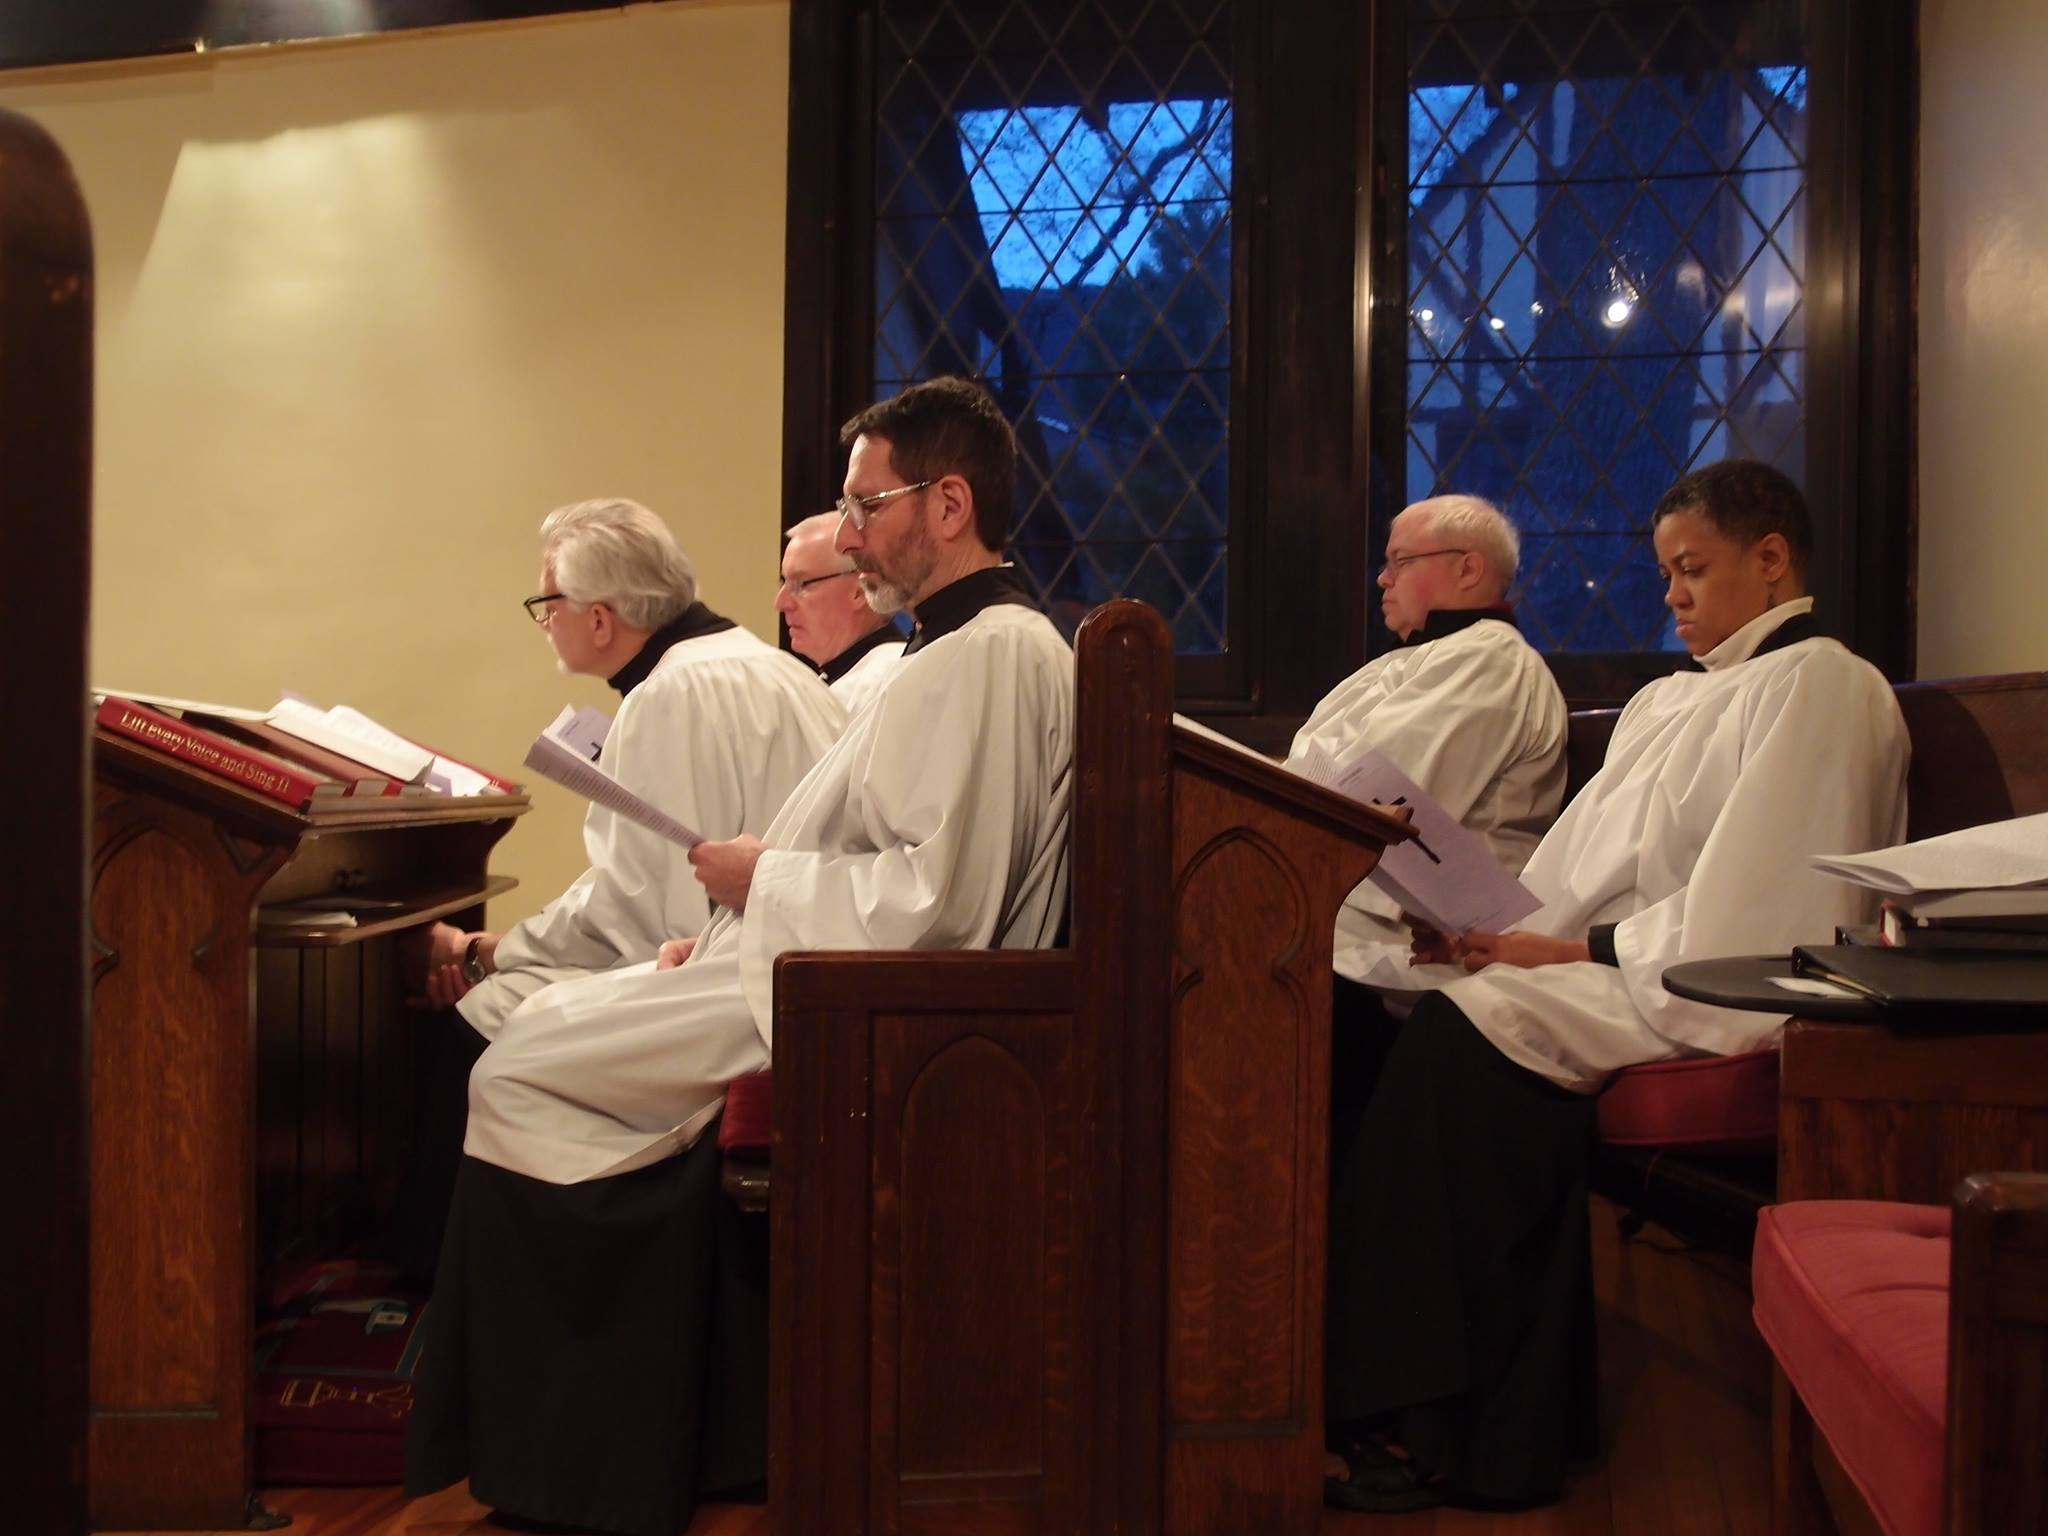 Choir members listen to reading of the Passion